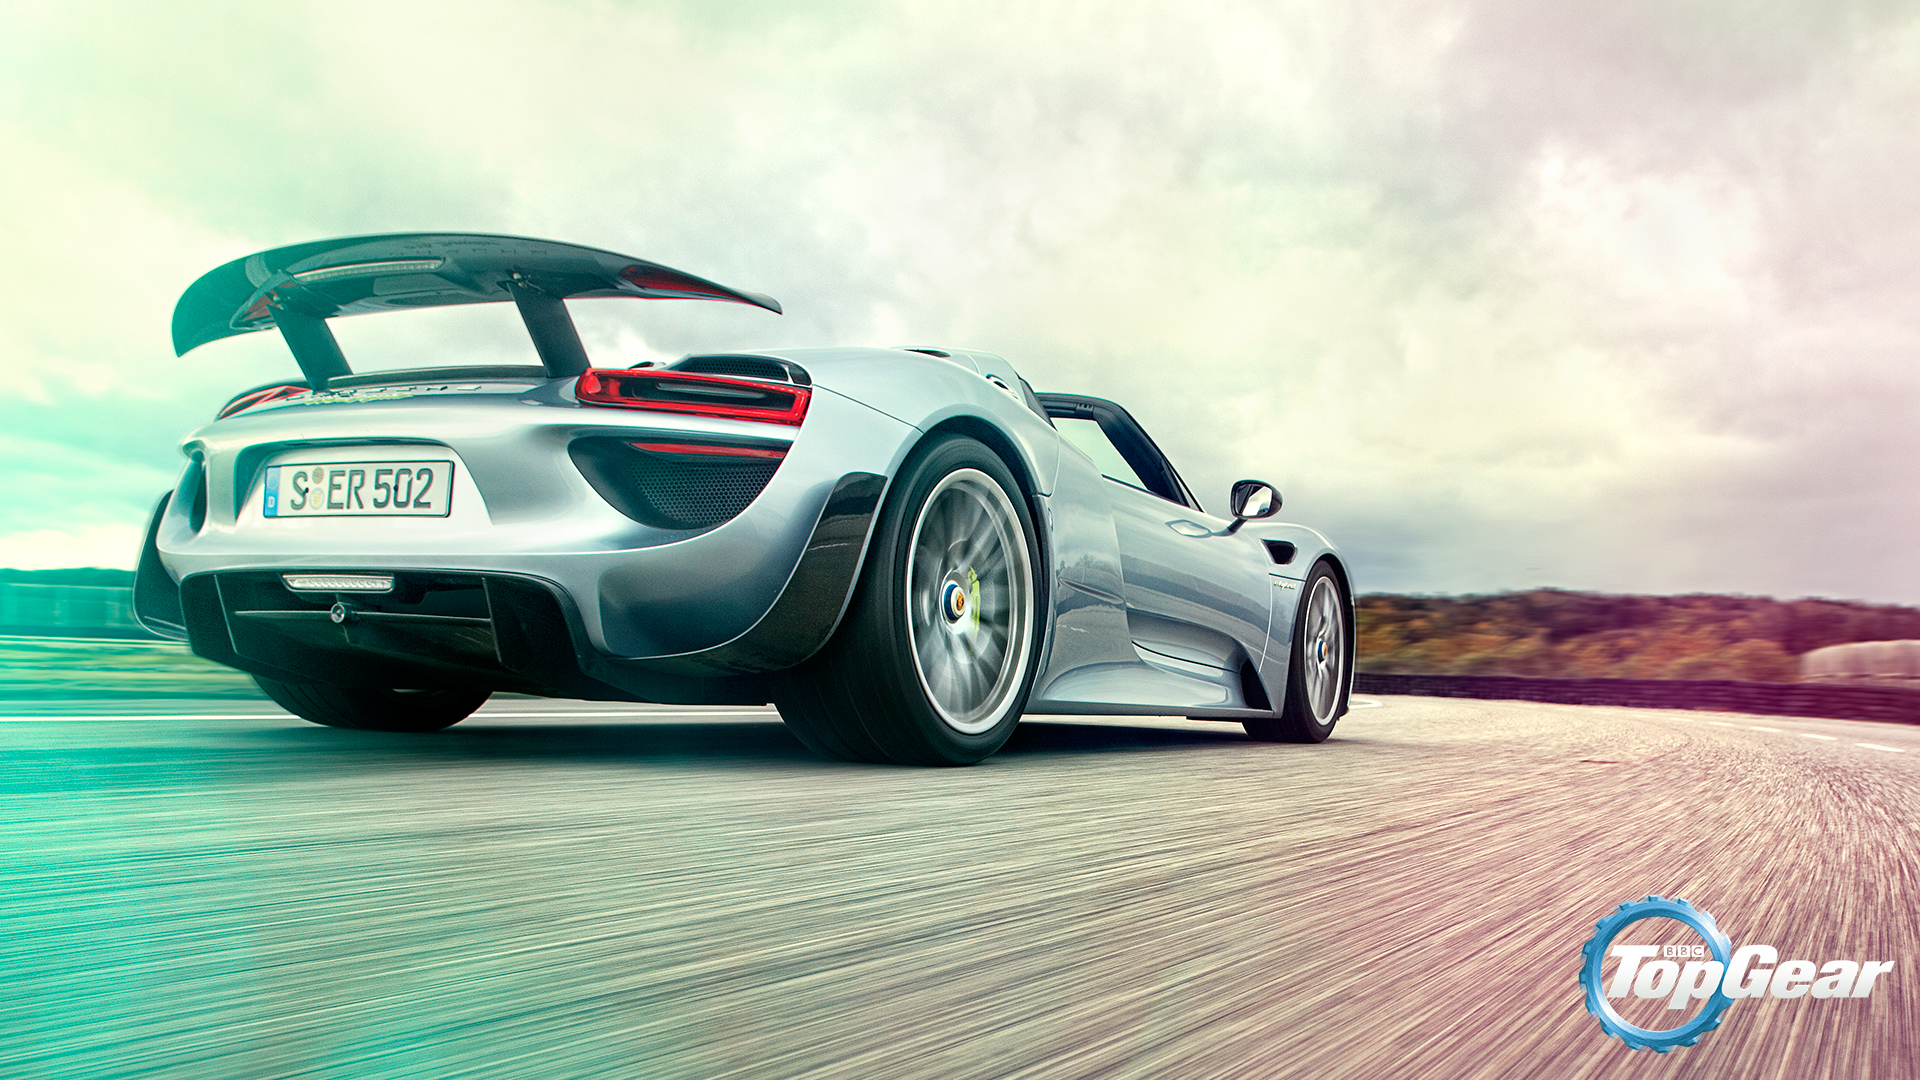 wallpapers the porsche 918 spyder bbc top gear. Black Bedroom Furniture Sets. Home Design Ideas